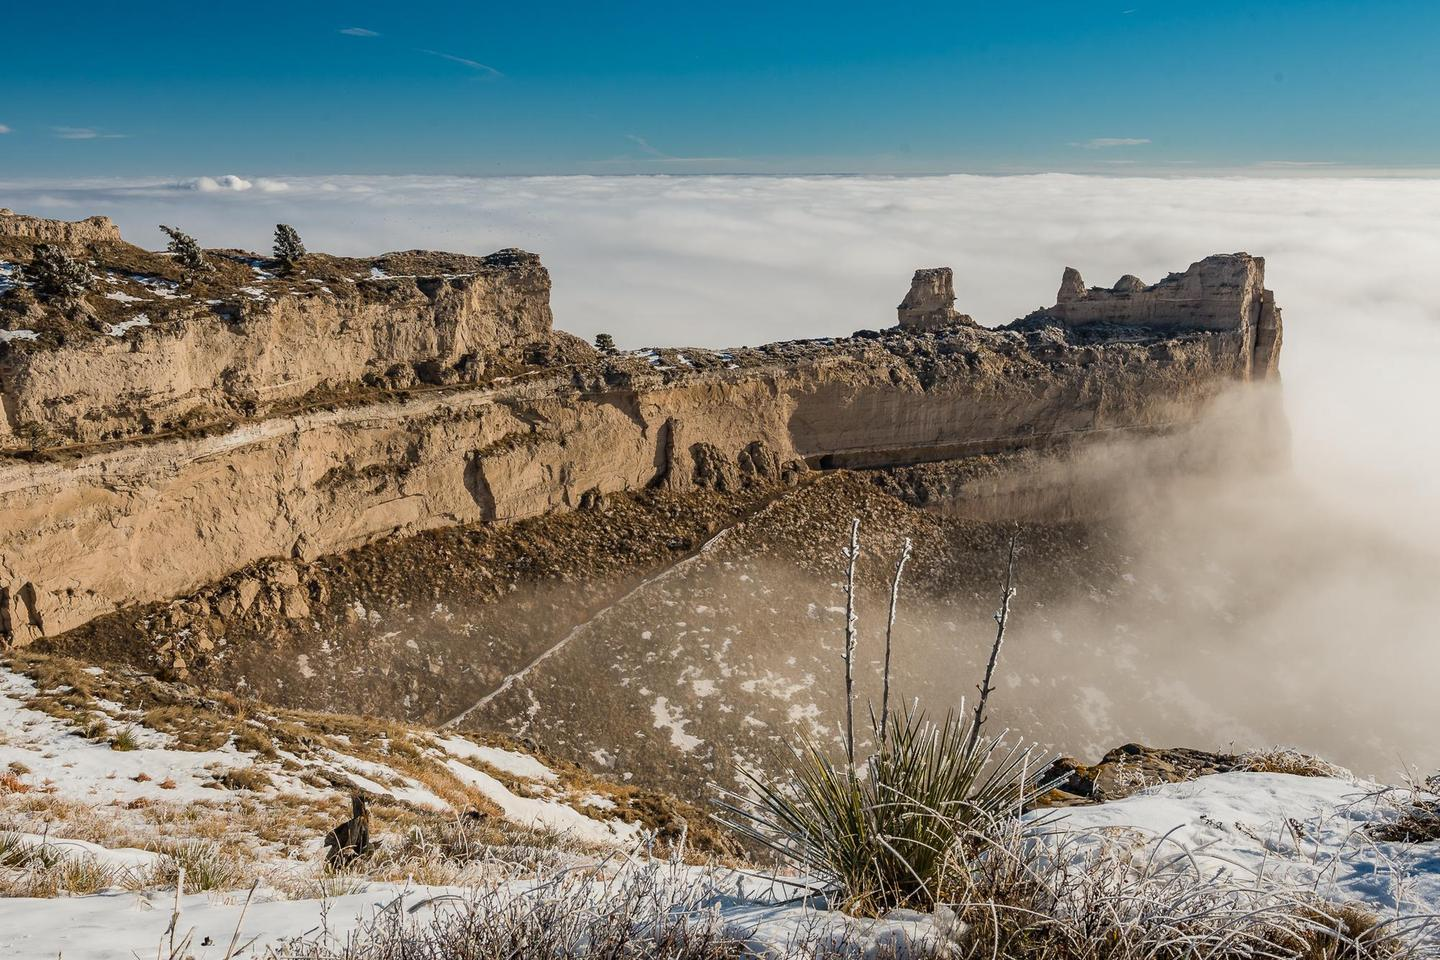 Preview photo of Scotts Bluff National Monument